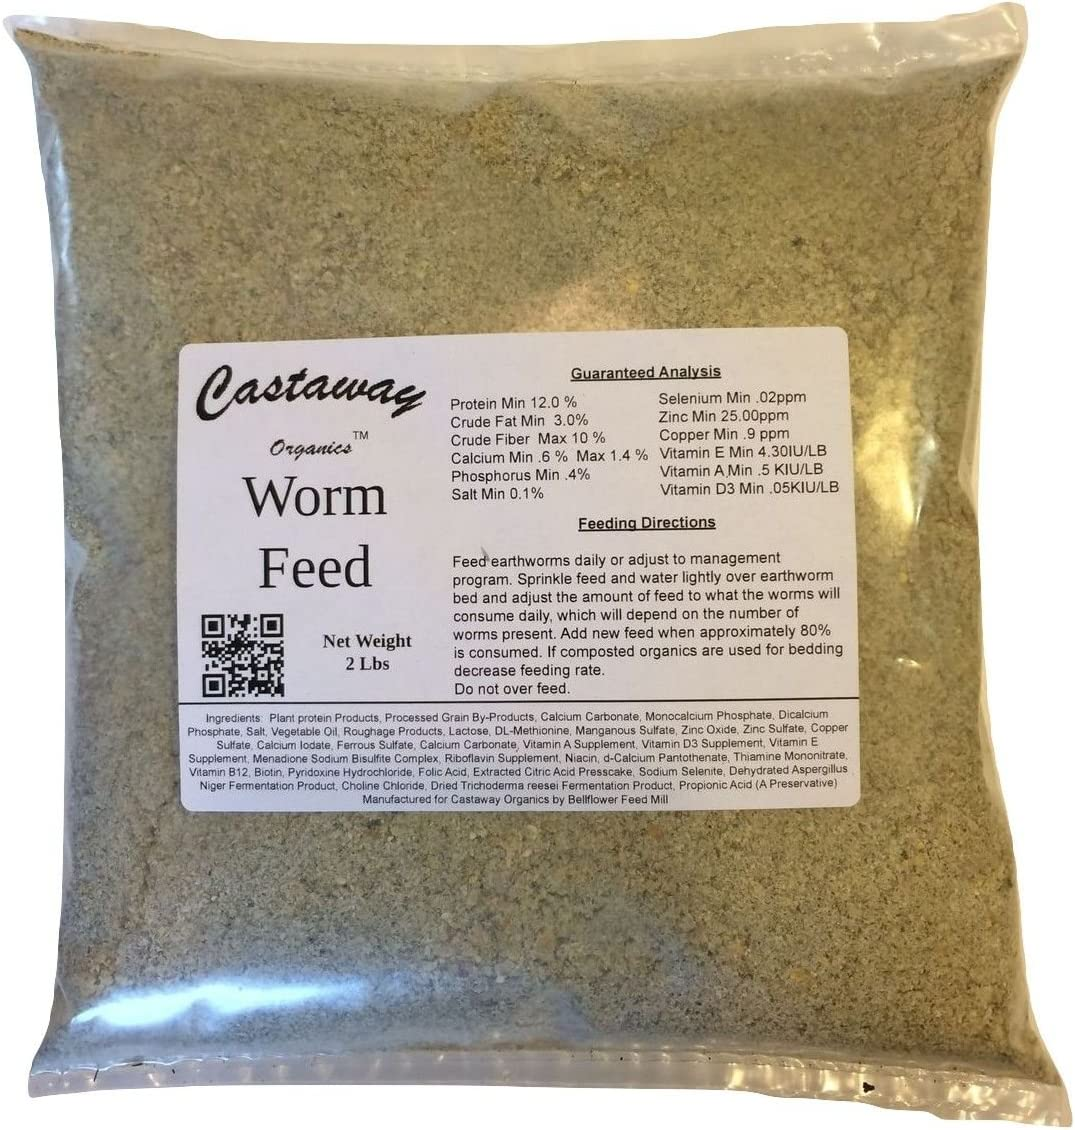 Castaway Organics 2 lbs Worm Feed (Worm Chow Food for All Composting and Bait Worms)